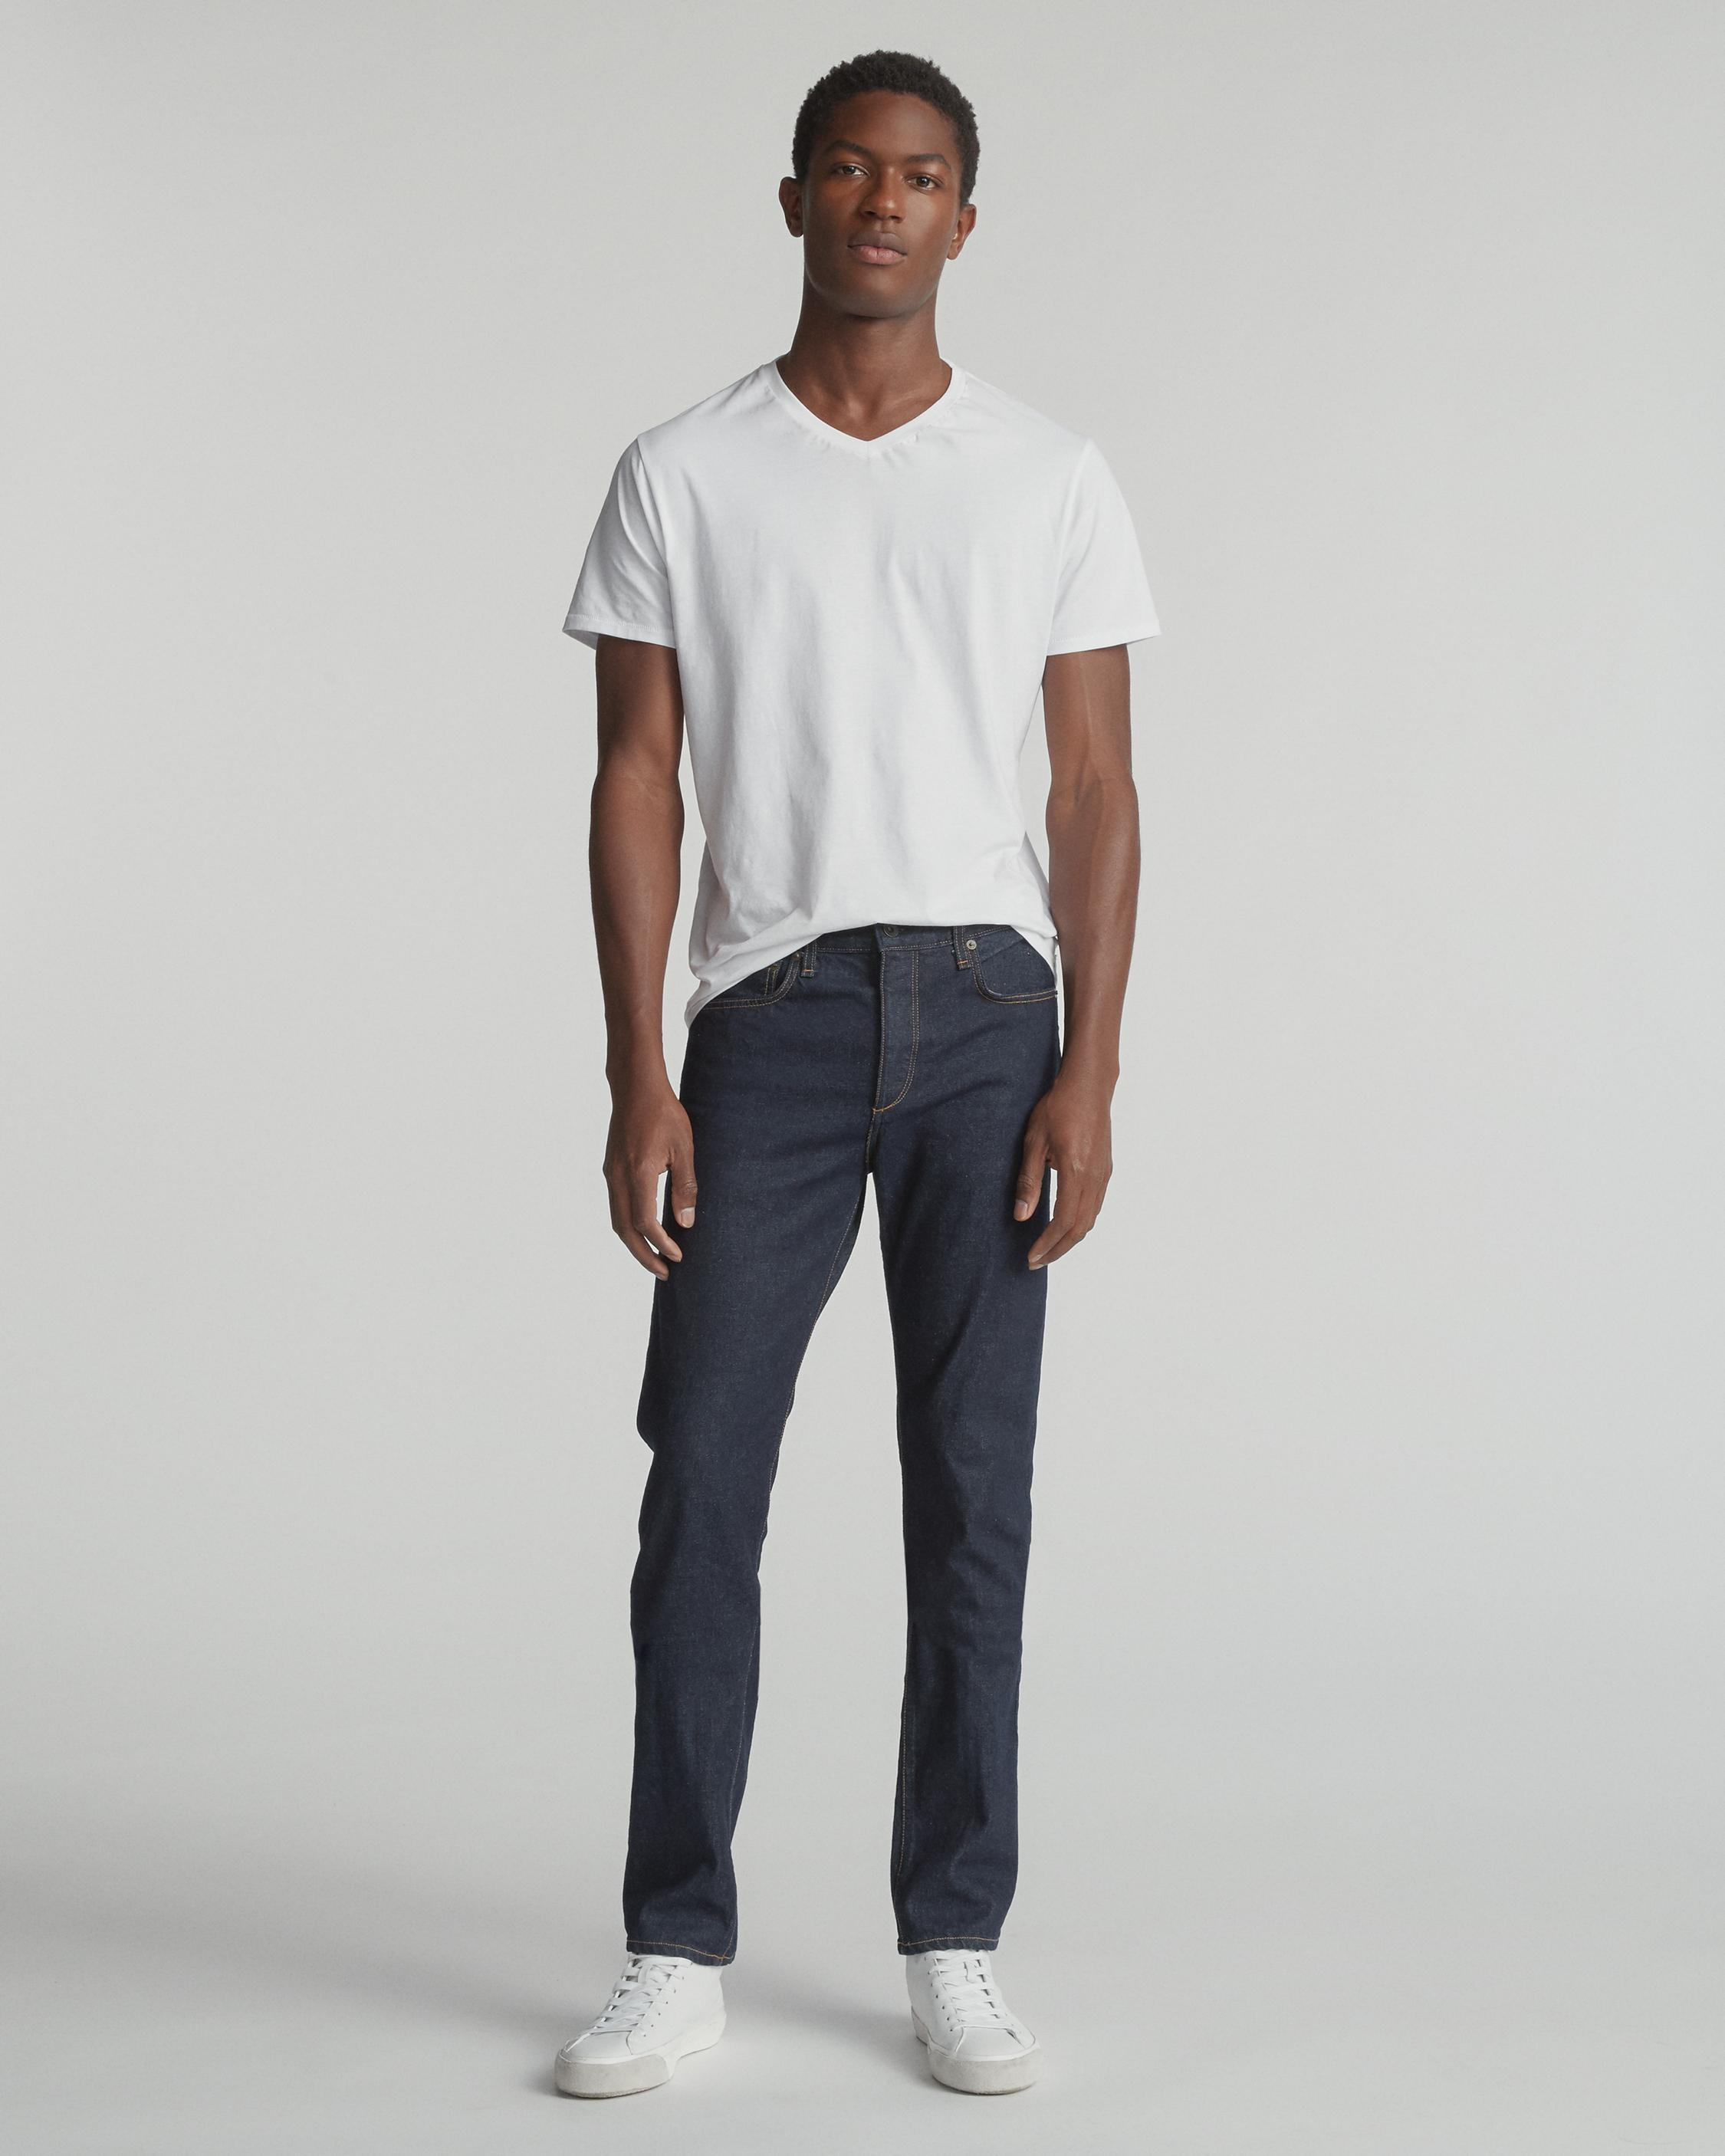 FIT 3 IN INDIGO RINSE SELVEDGE